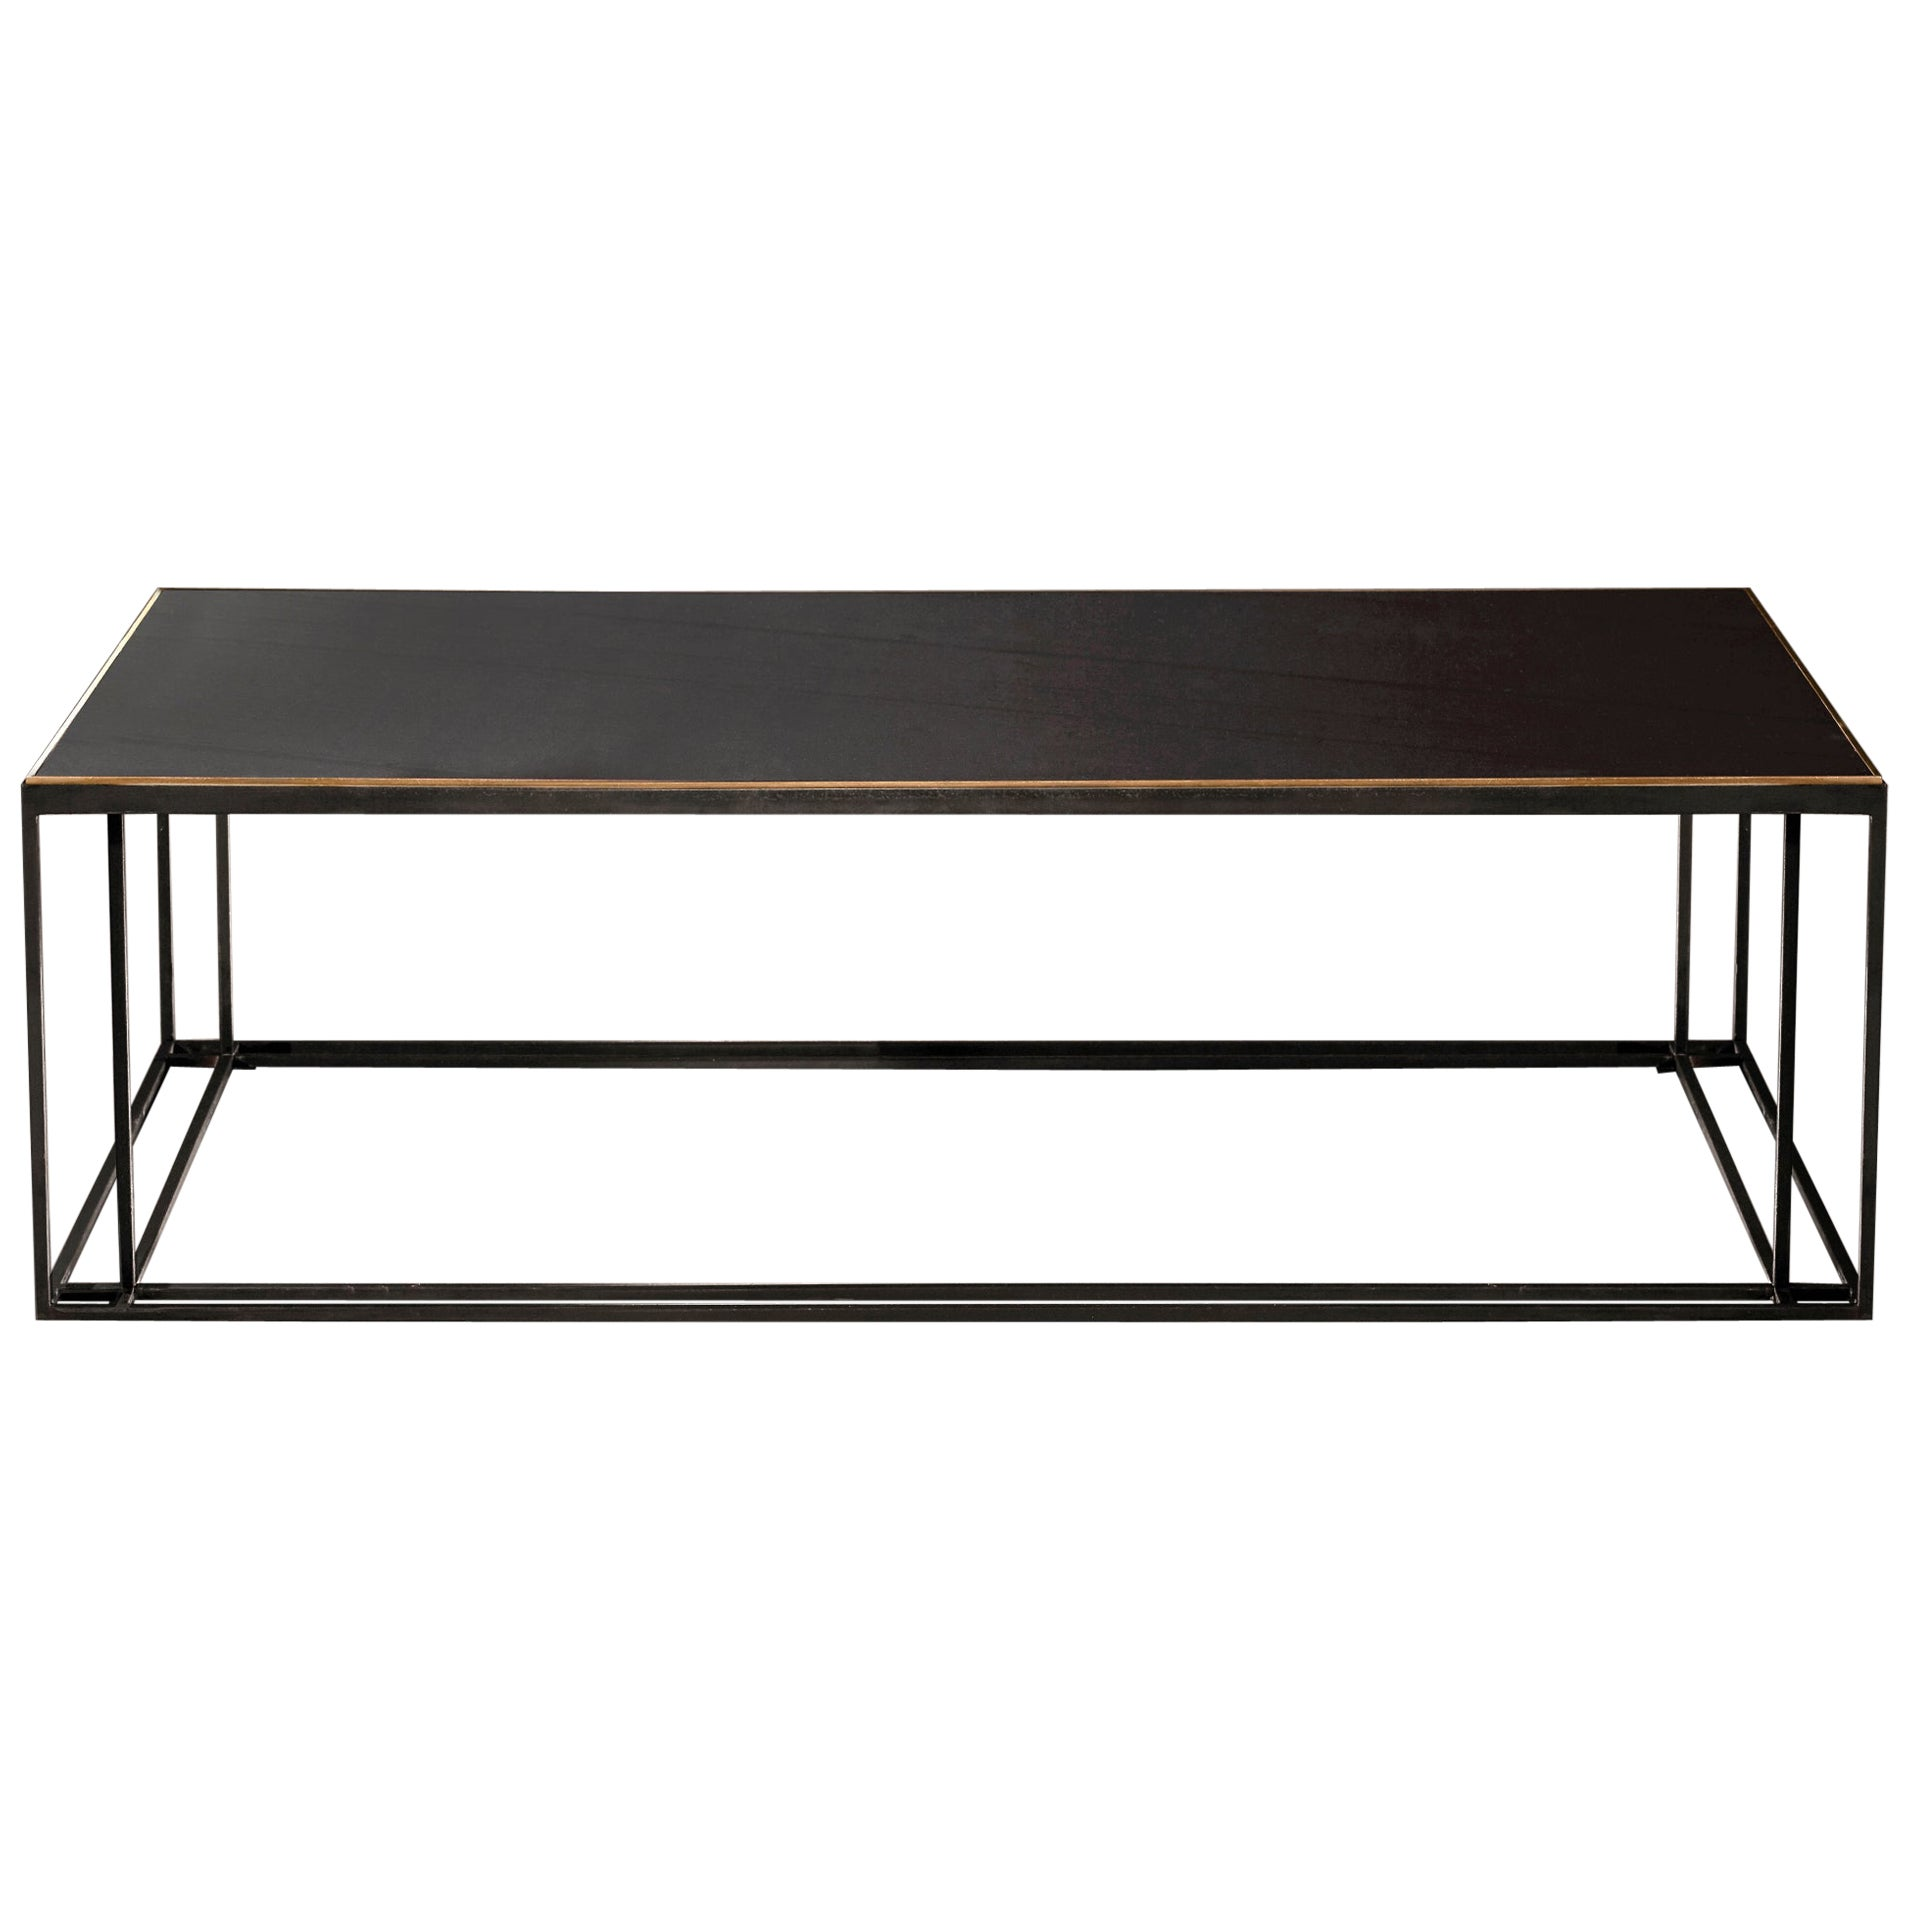 Slate Handcrafted Coffee Table and Signed by Novocastrian